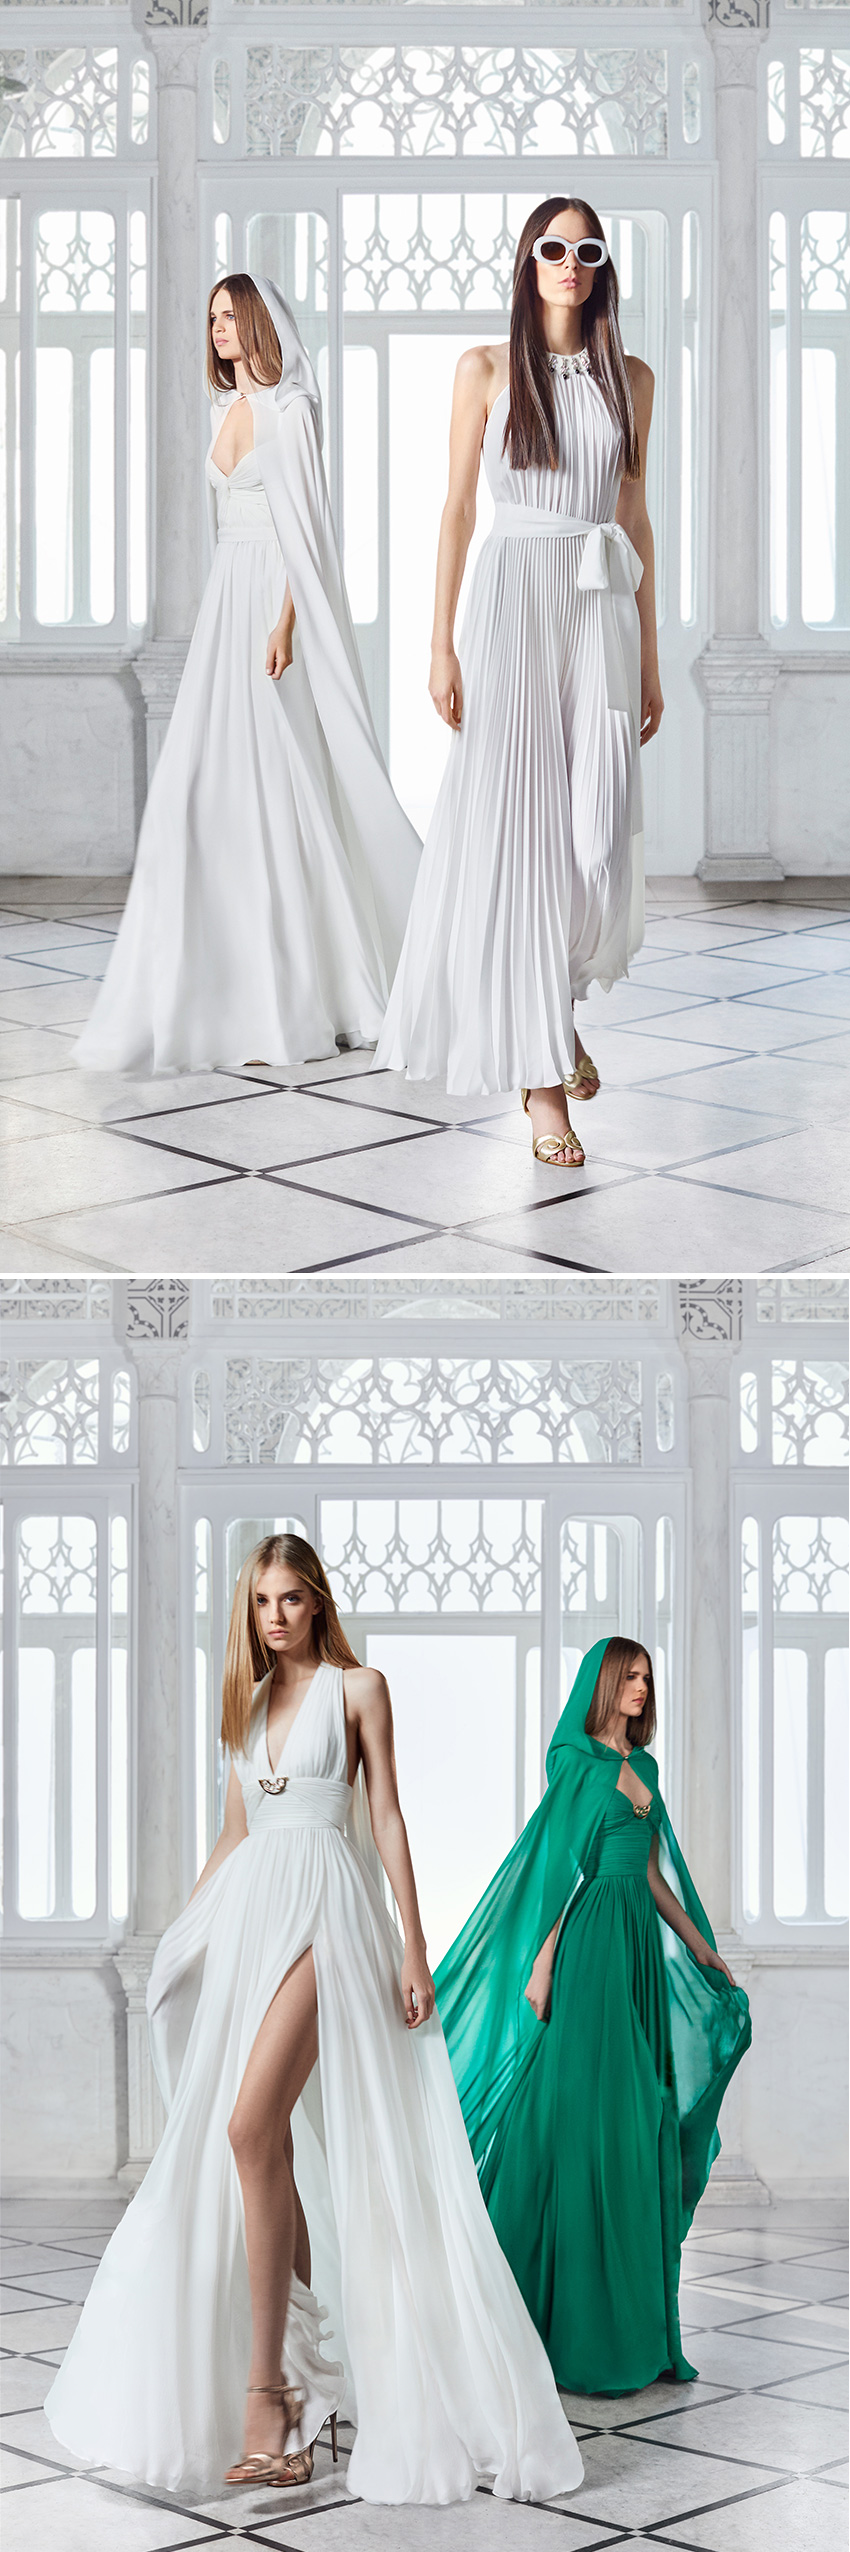 ELIE SAAB PREFALL 2021 brings the emboldened feminine strength of the 1970s into the contemporary moment in Perfect Wedding Magazine